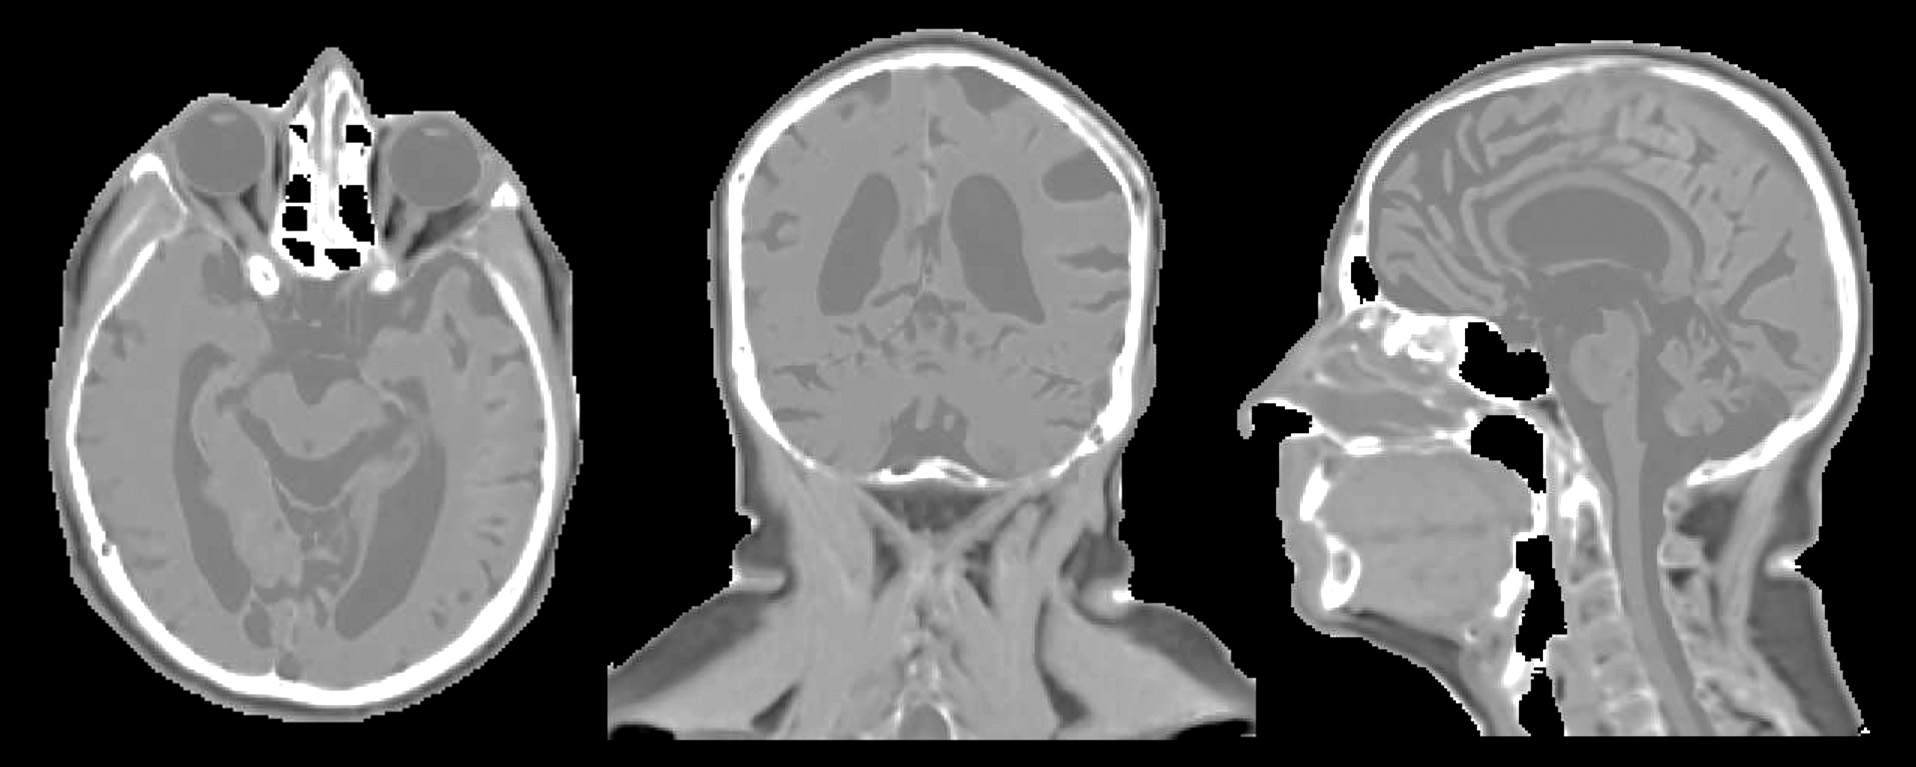 Synthetic CT of the head